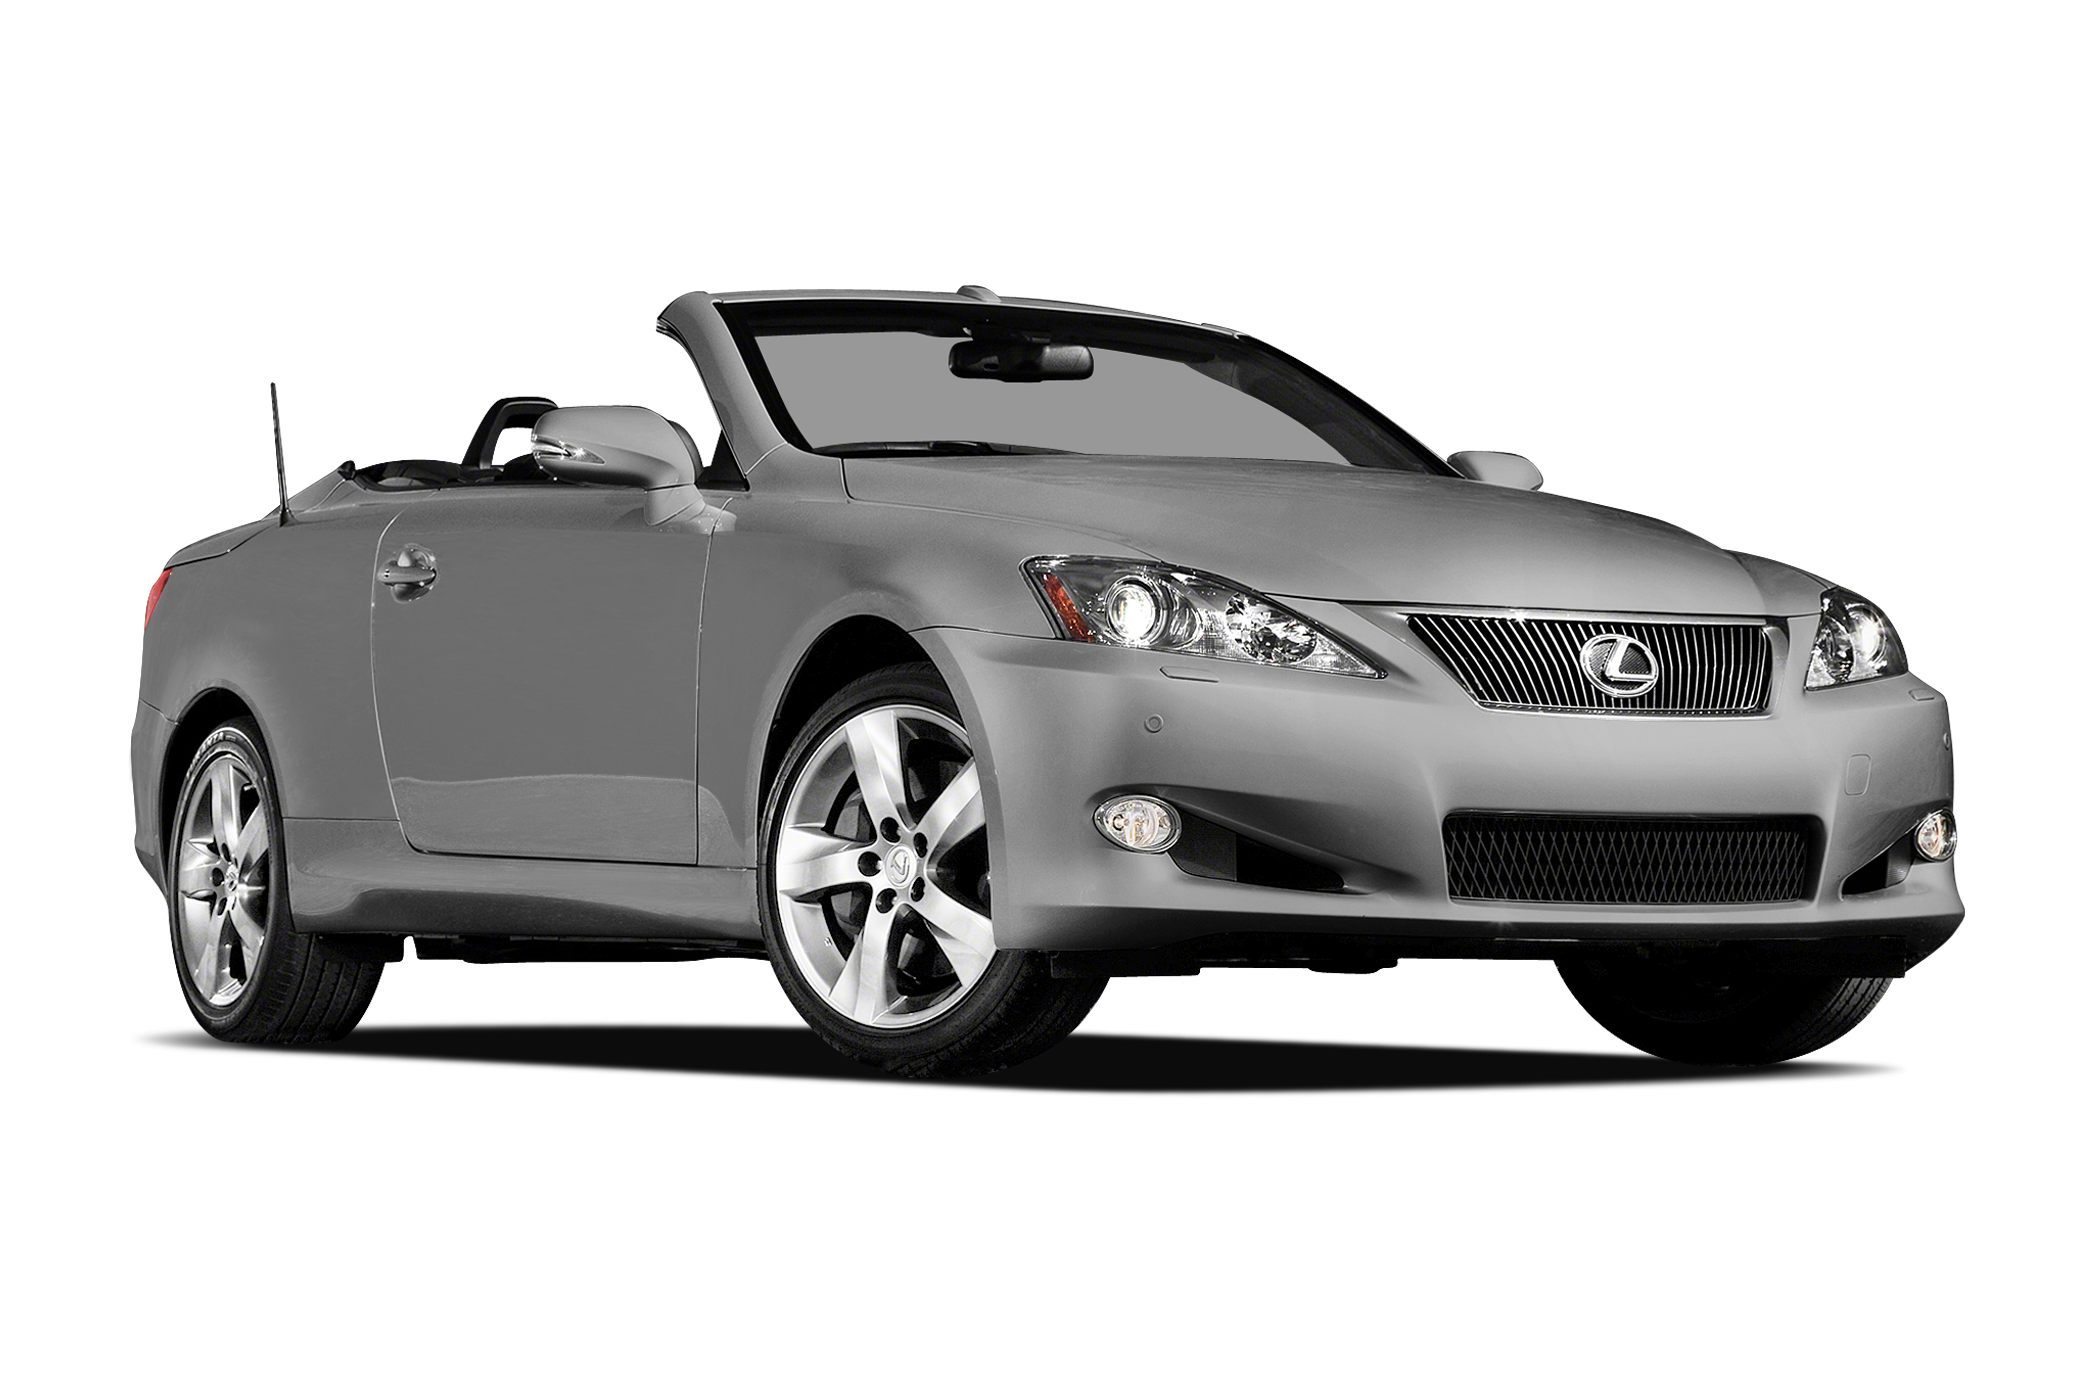 2012 Lexus IS 250C